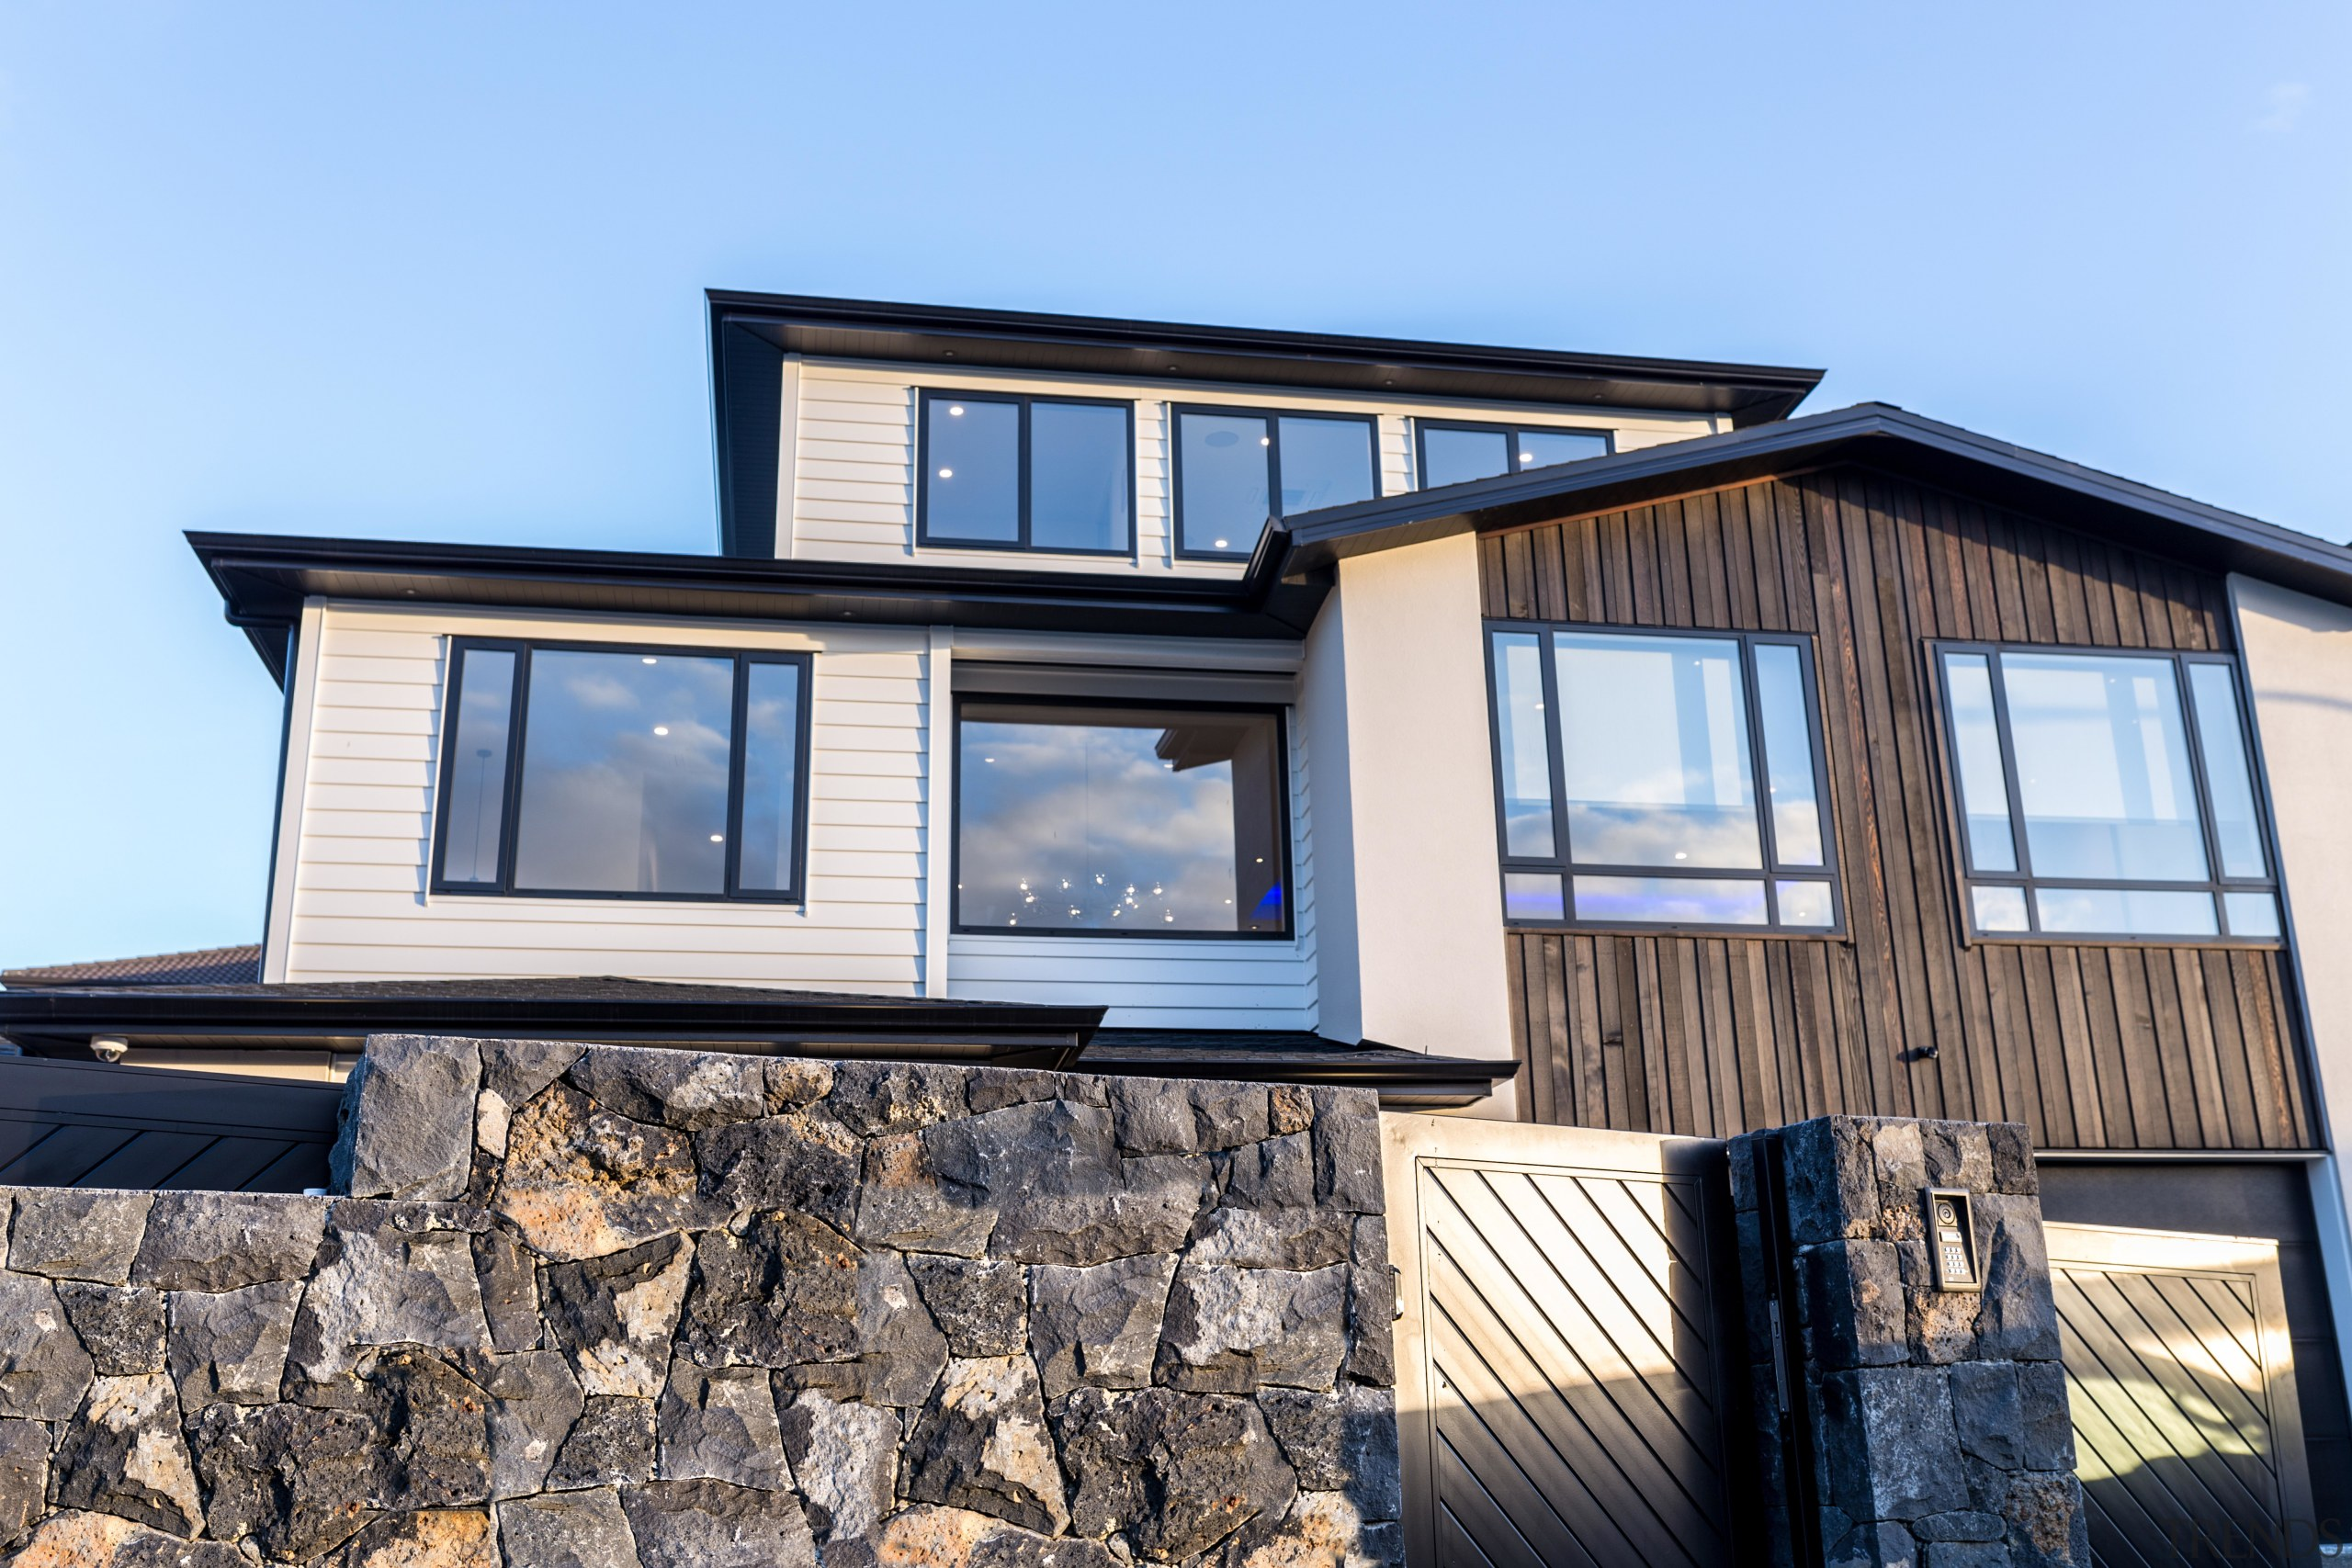 This showhome by Chancellor Construction has a dramatic home, house, property, real estate, residential area, window, Sang Architectural, Chancellor Construction, Elite North Harbour